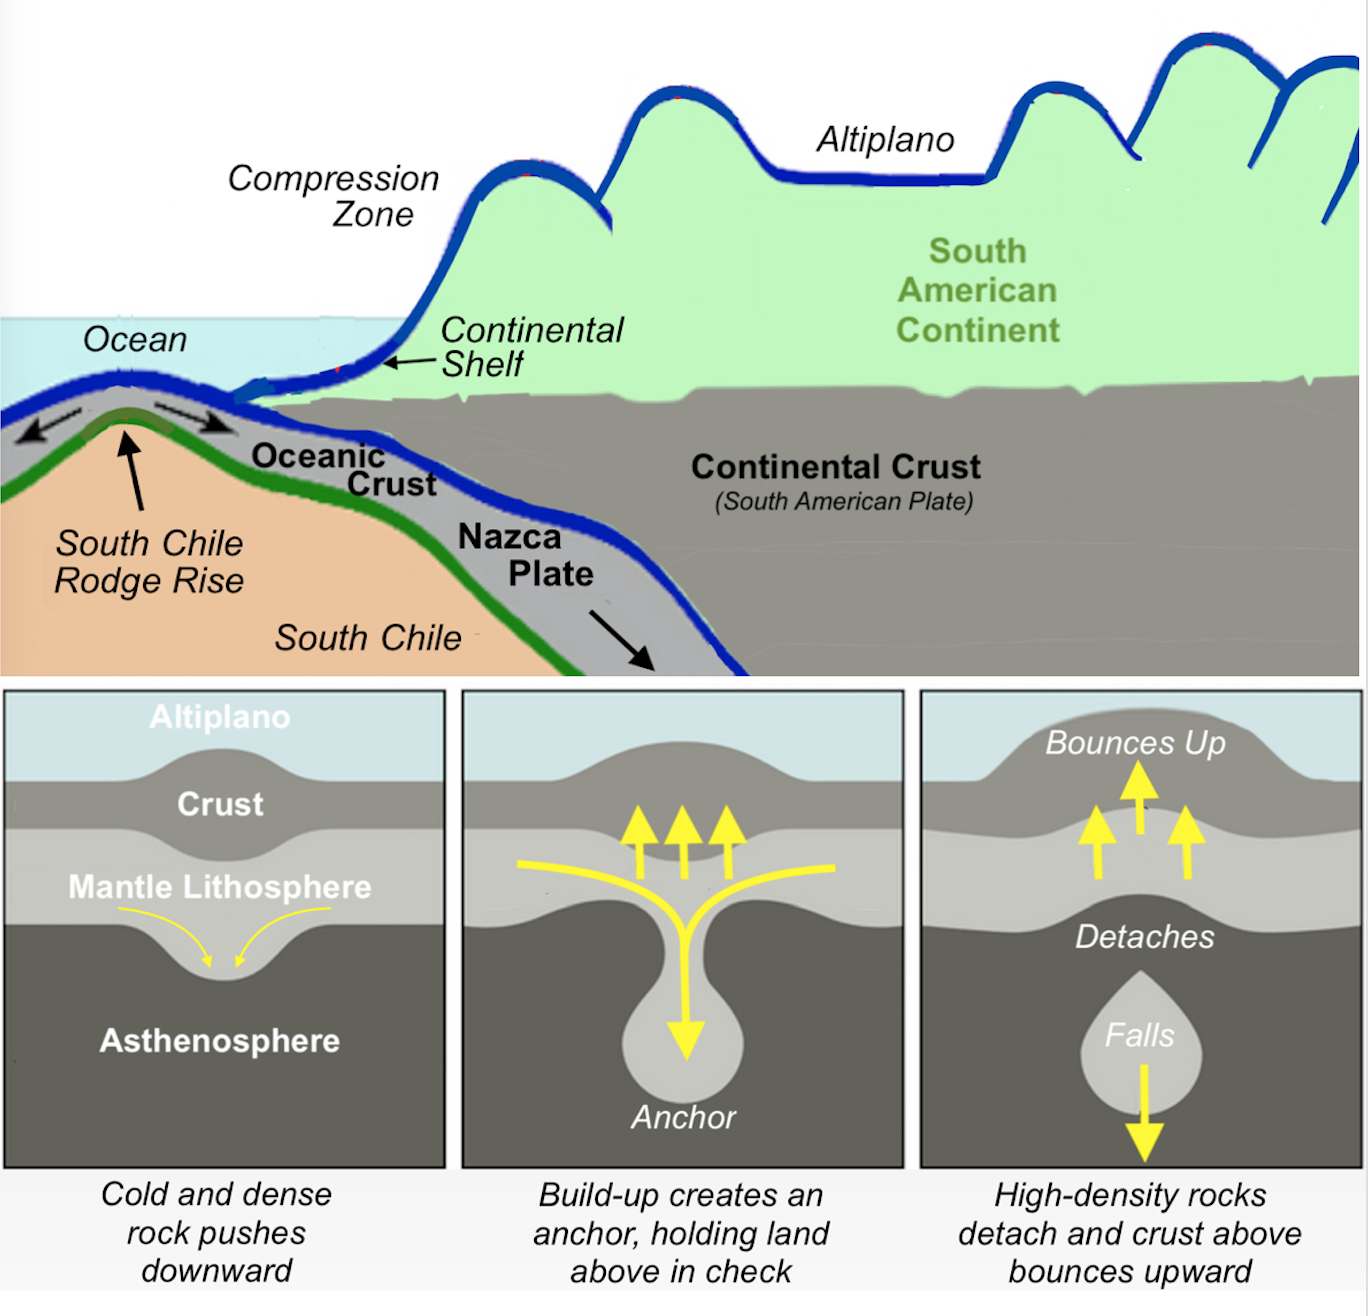 evidence suggests that the altiplano rose in pulses speedy for geologic phenomena through the dripping of dense rock called eclogite from the lower crust